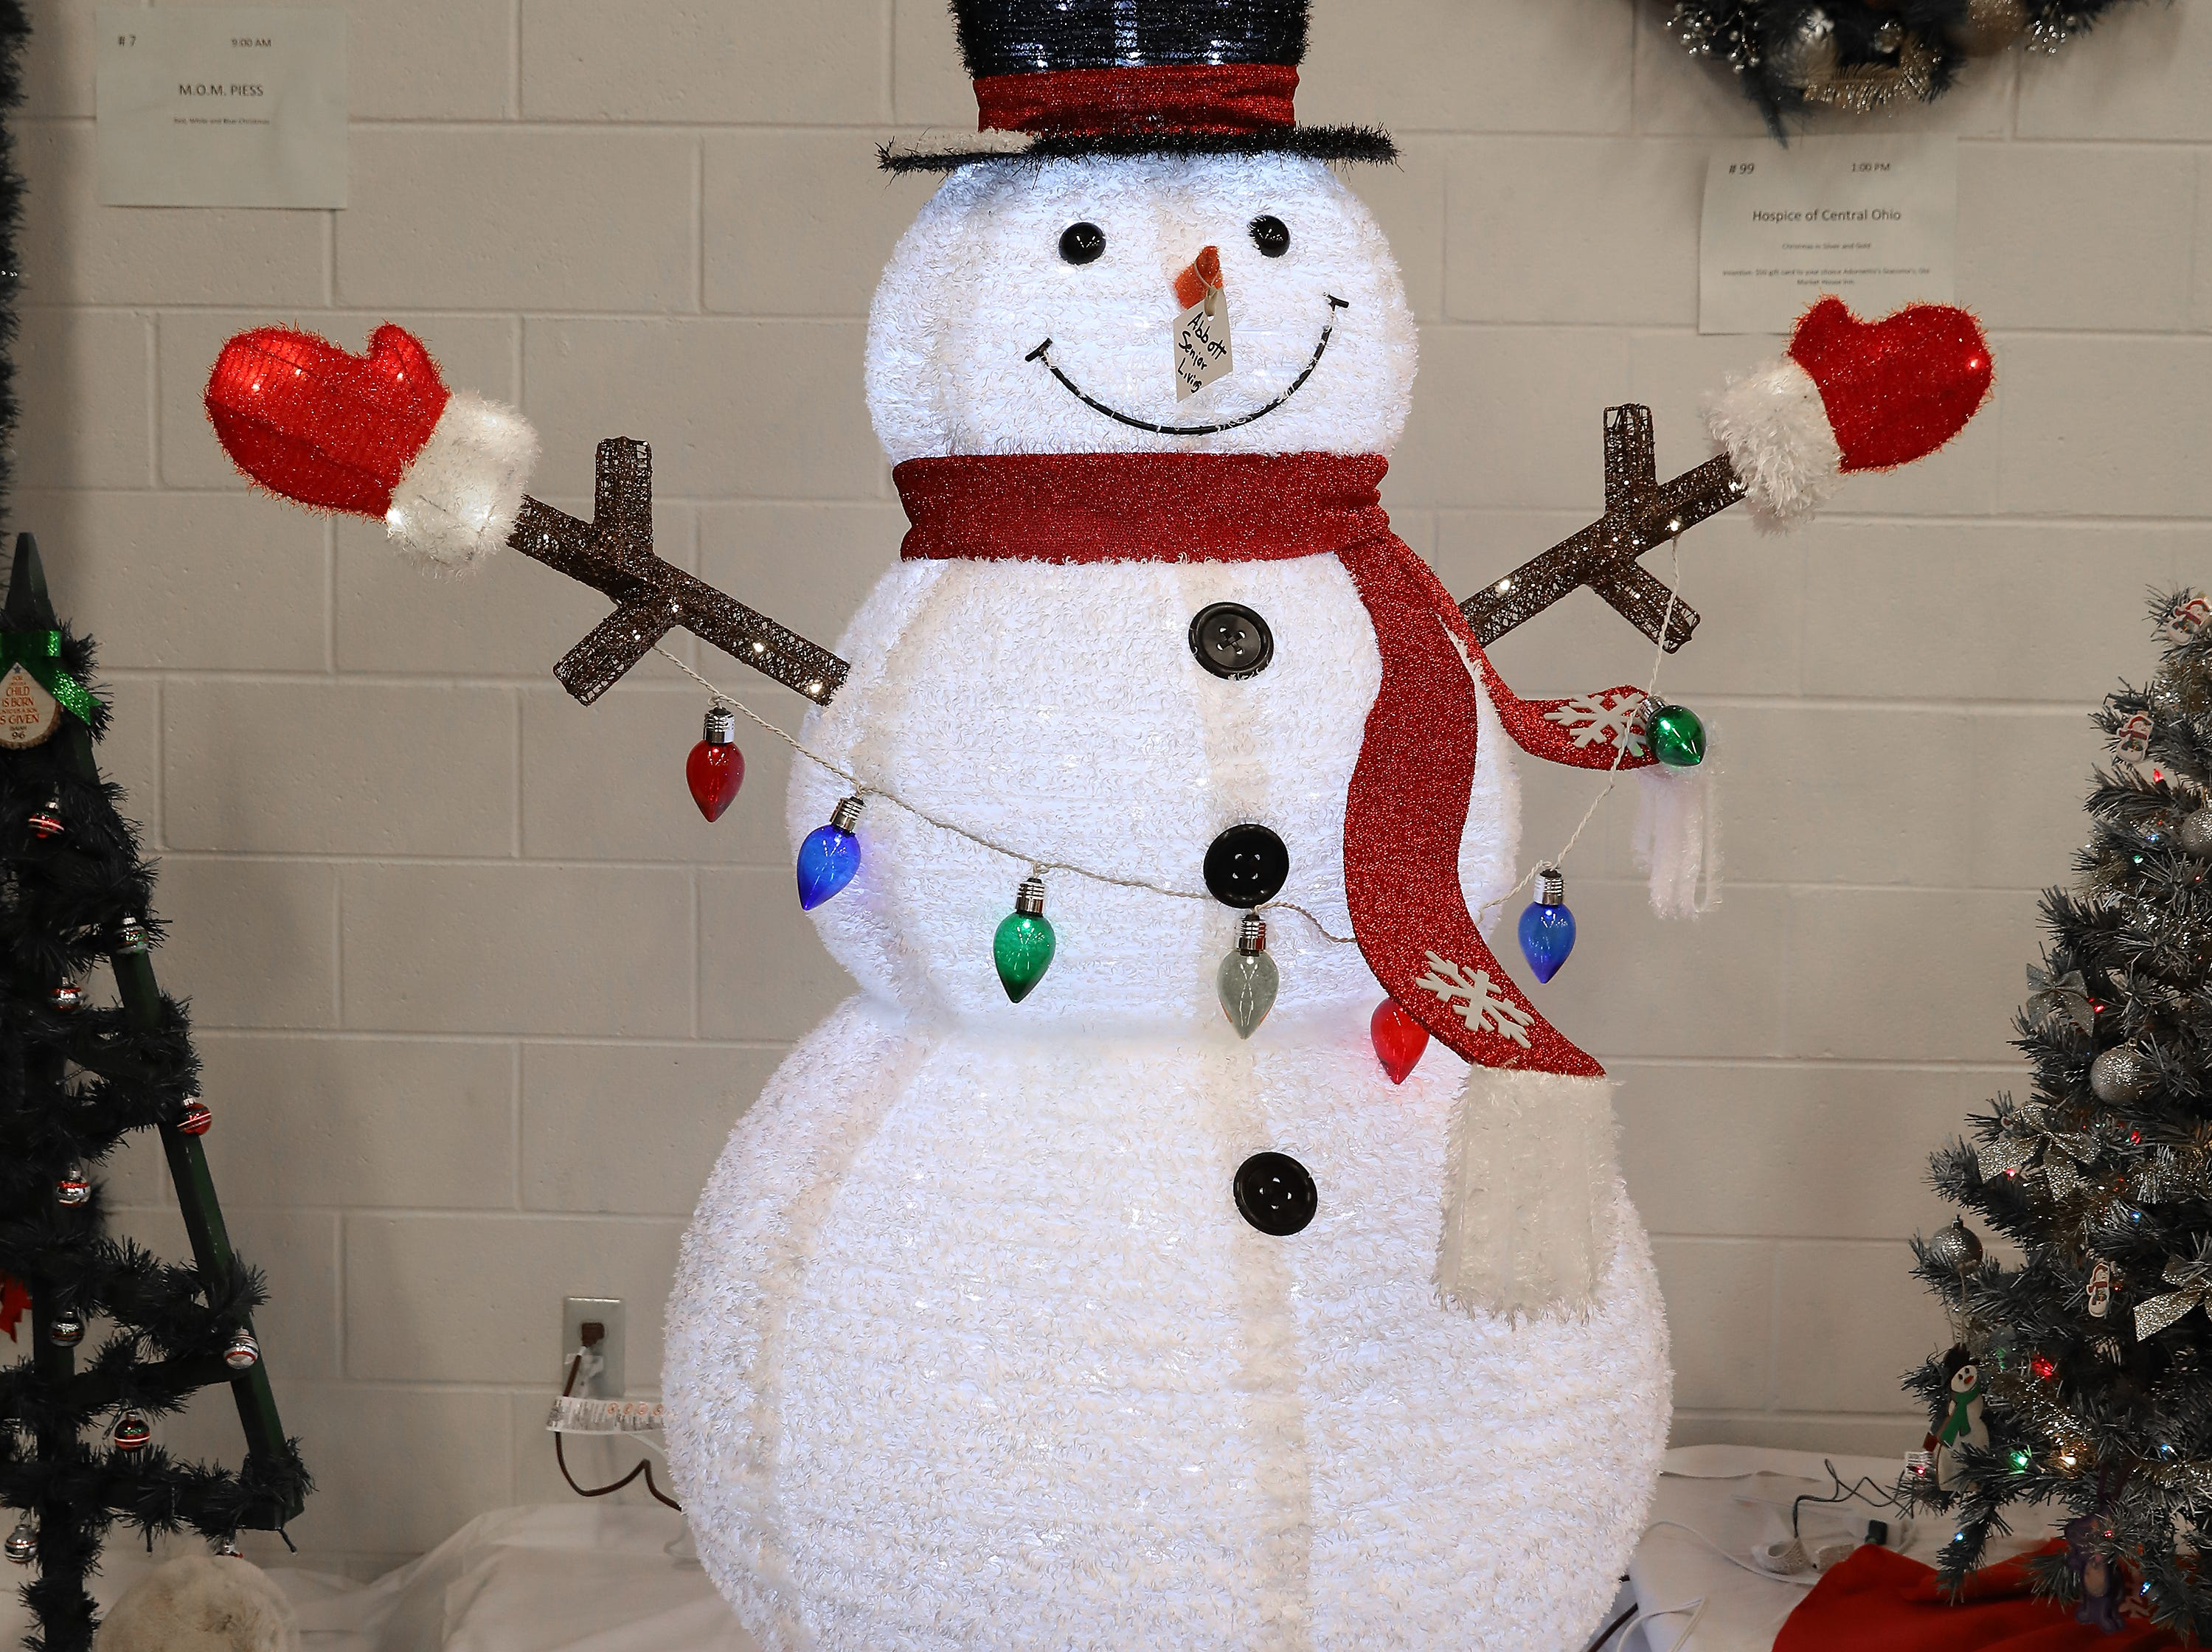 35	10:15 AM	Abbot Senior Living	Other	Winter Snowman	A 6' pop-up snowman with 200 cool white lights, 32 warm white led lights for indoor or outdoor use.		Entry is incentive.